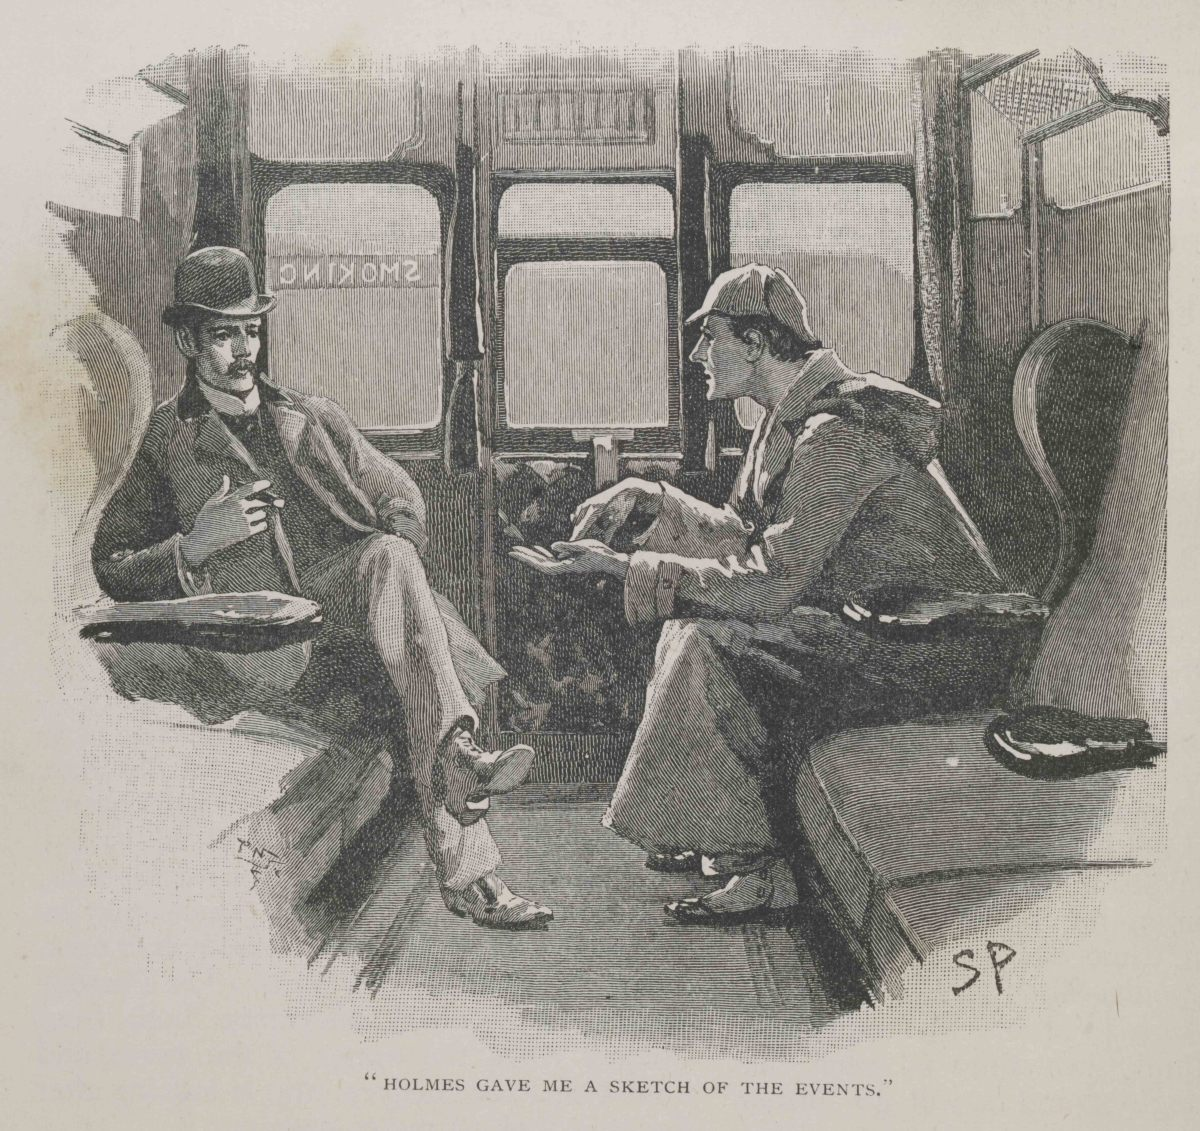 Holmes and Watson illustrated by Sidney Paget.